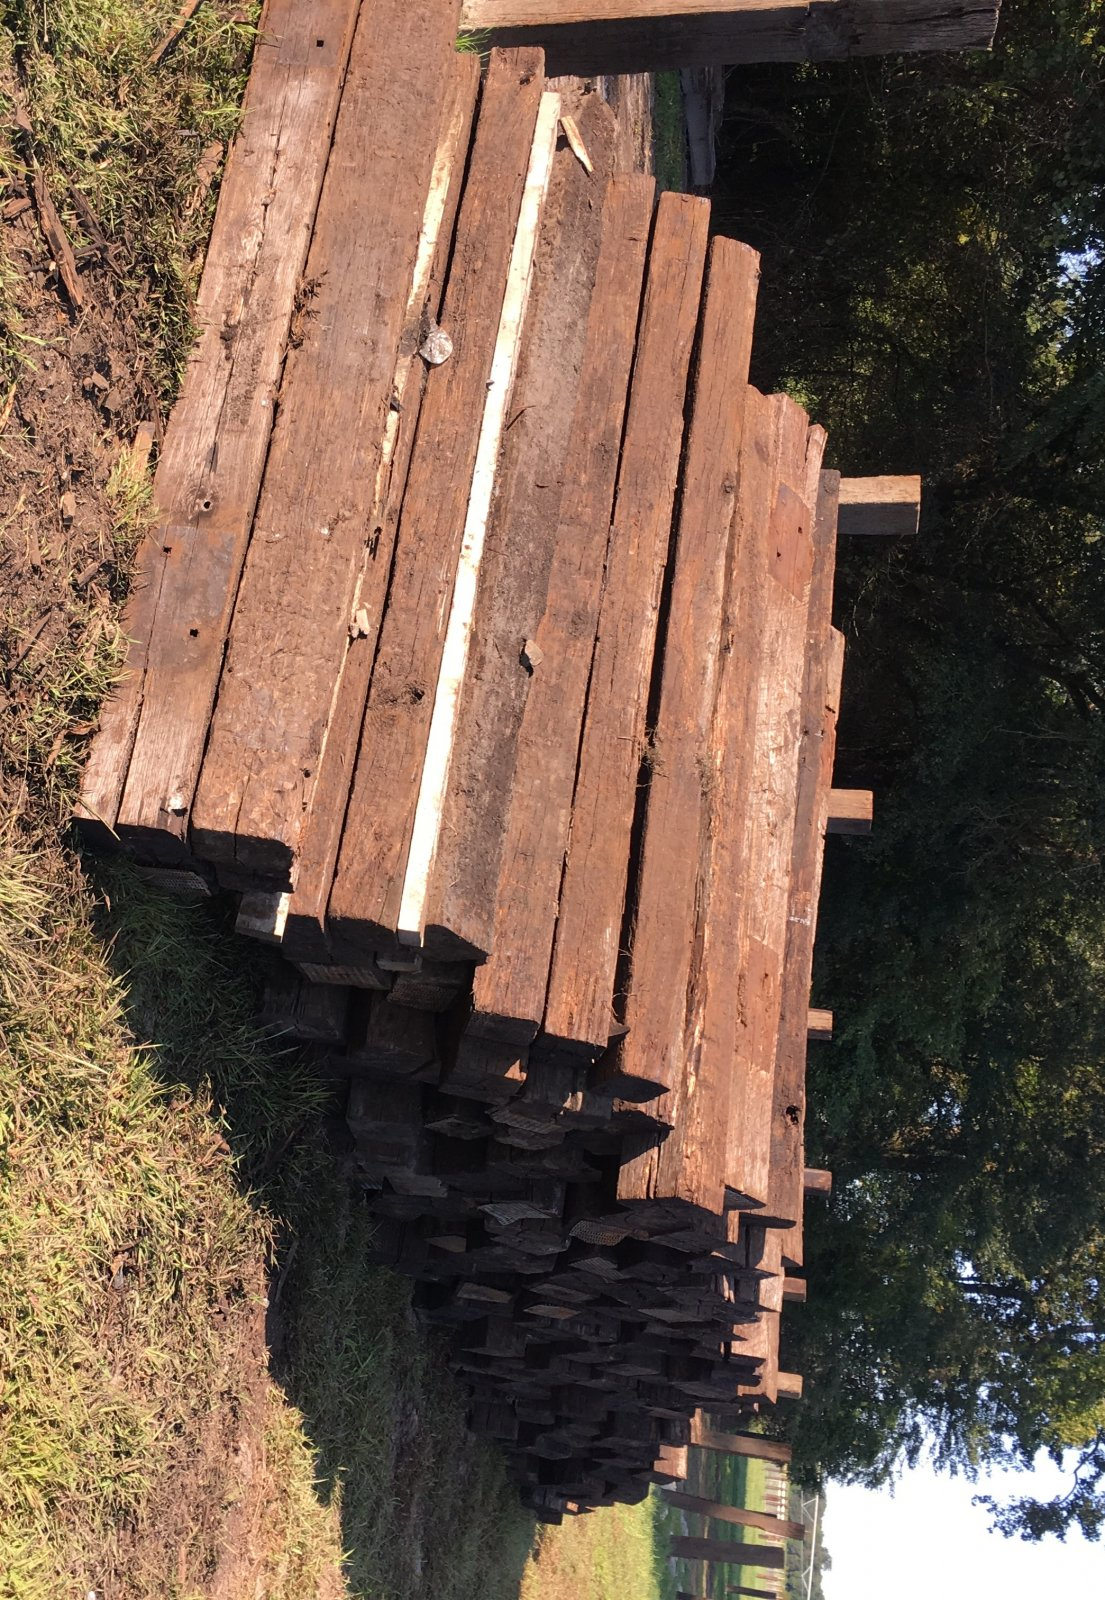 Used Railroad Ties | LawnSite